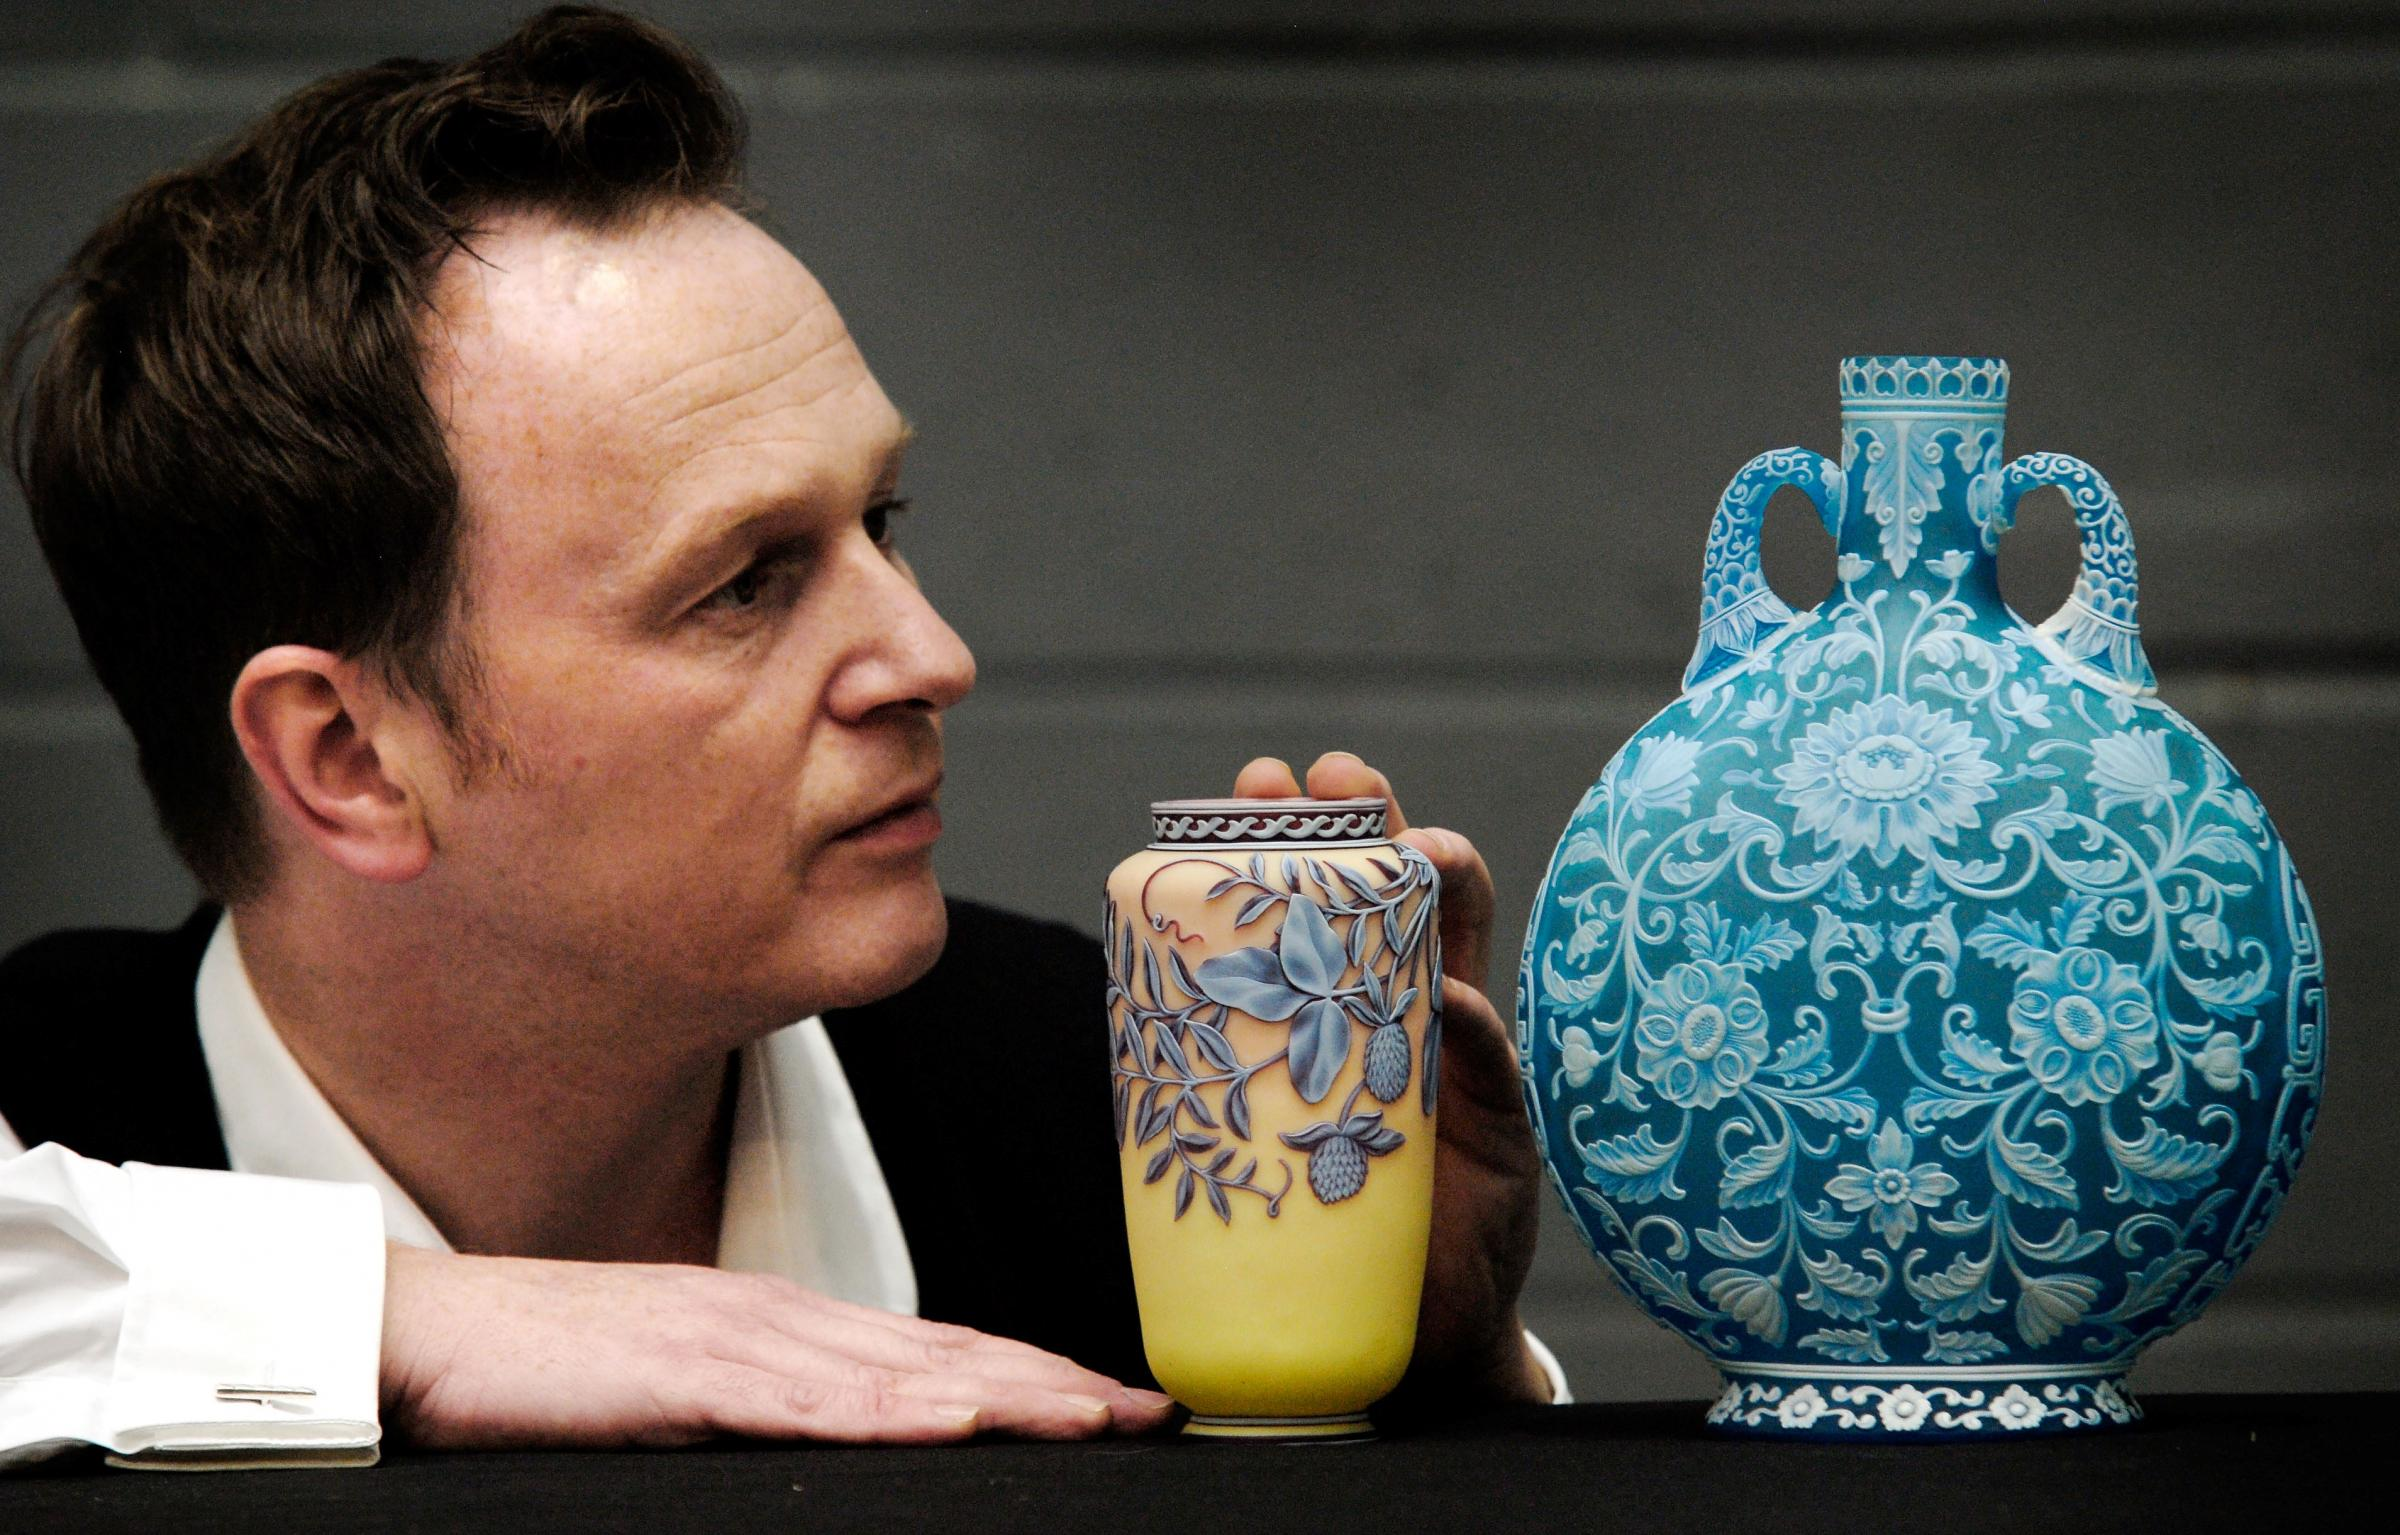 Auctioneer Will Farmer with a Queen's Burmese cameo glass vase and blue cameo moon flask, both by Thomas Webb & Sons. Buy photo: 101409L